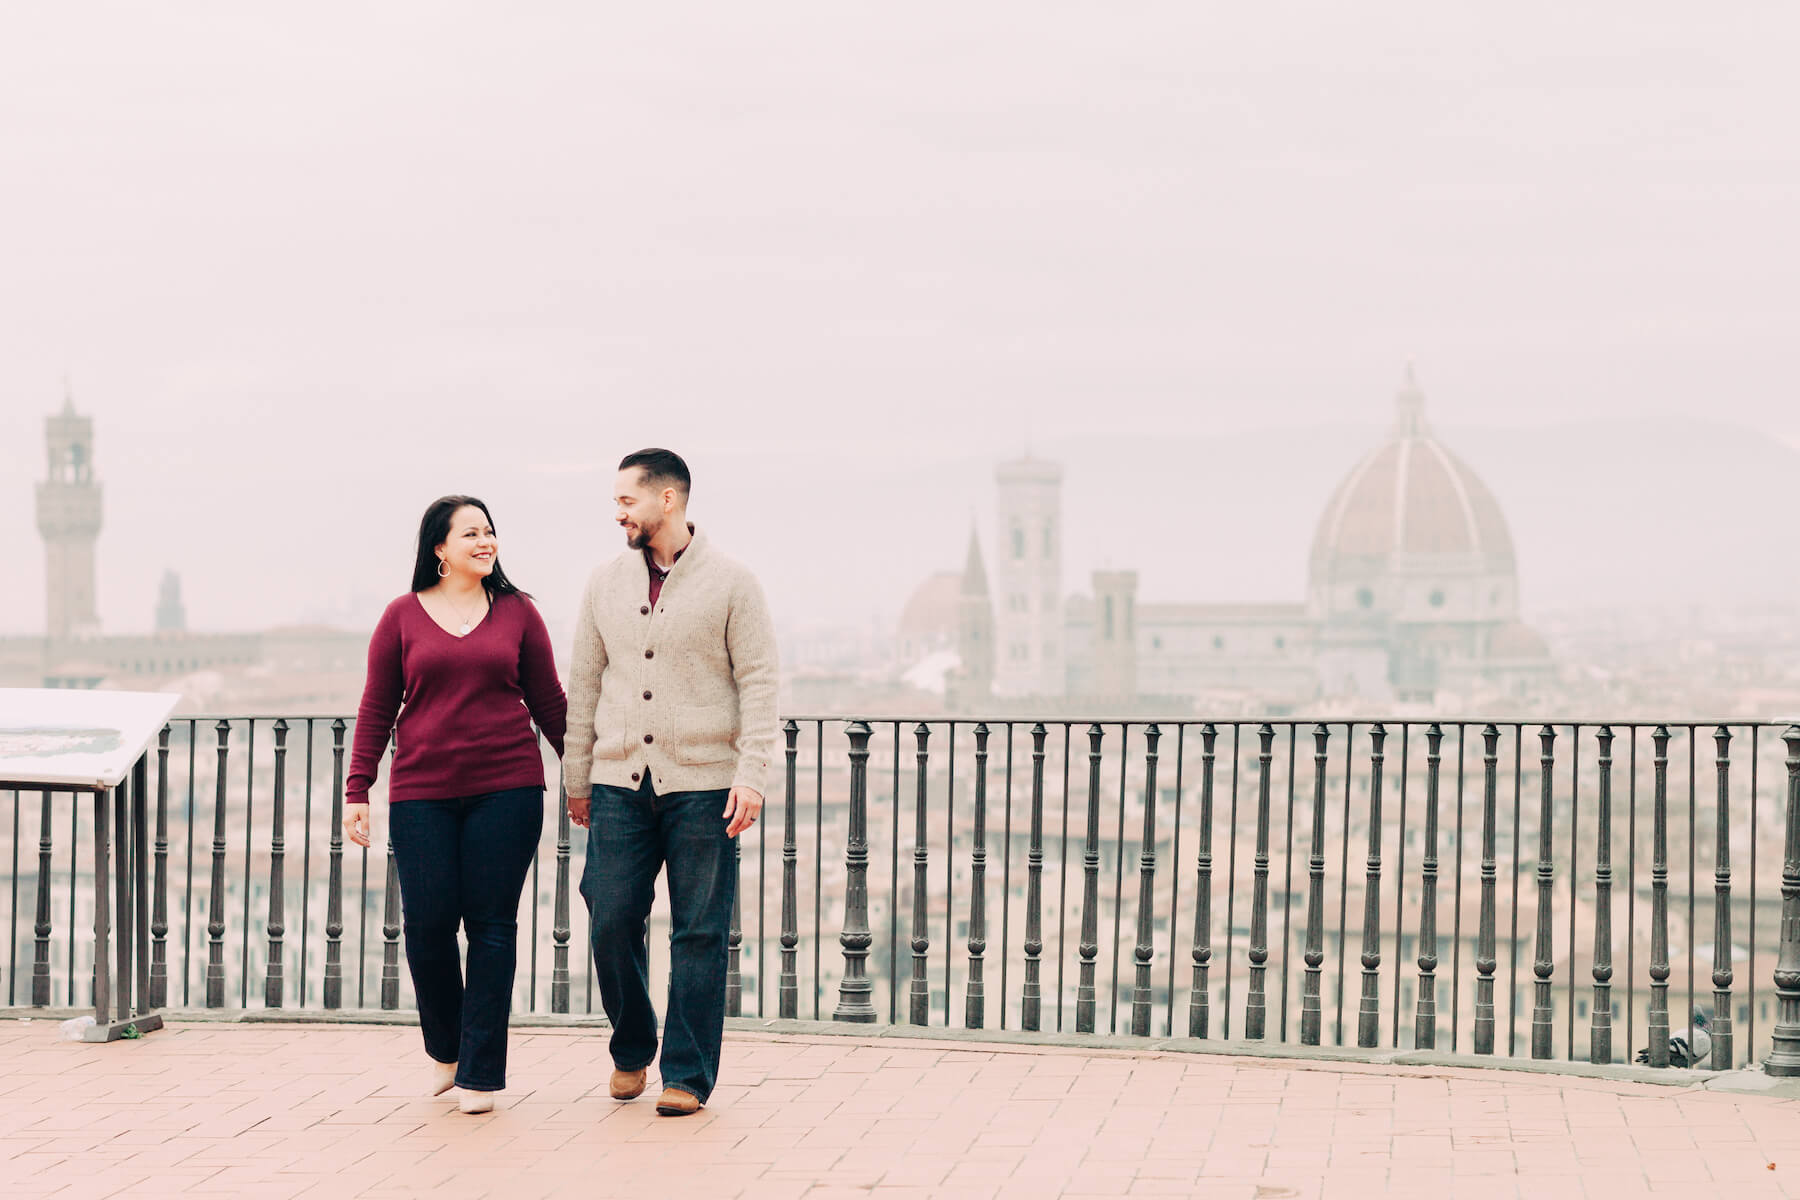 Couple looking lovingly at each other on a trip together at Piazzale Michelangelo in Florence, Italy